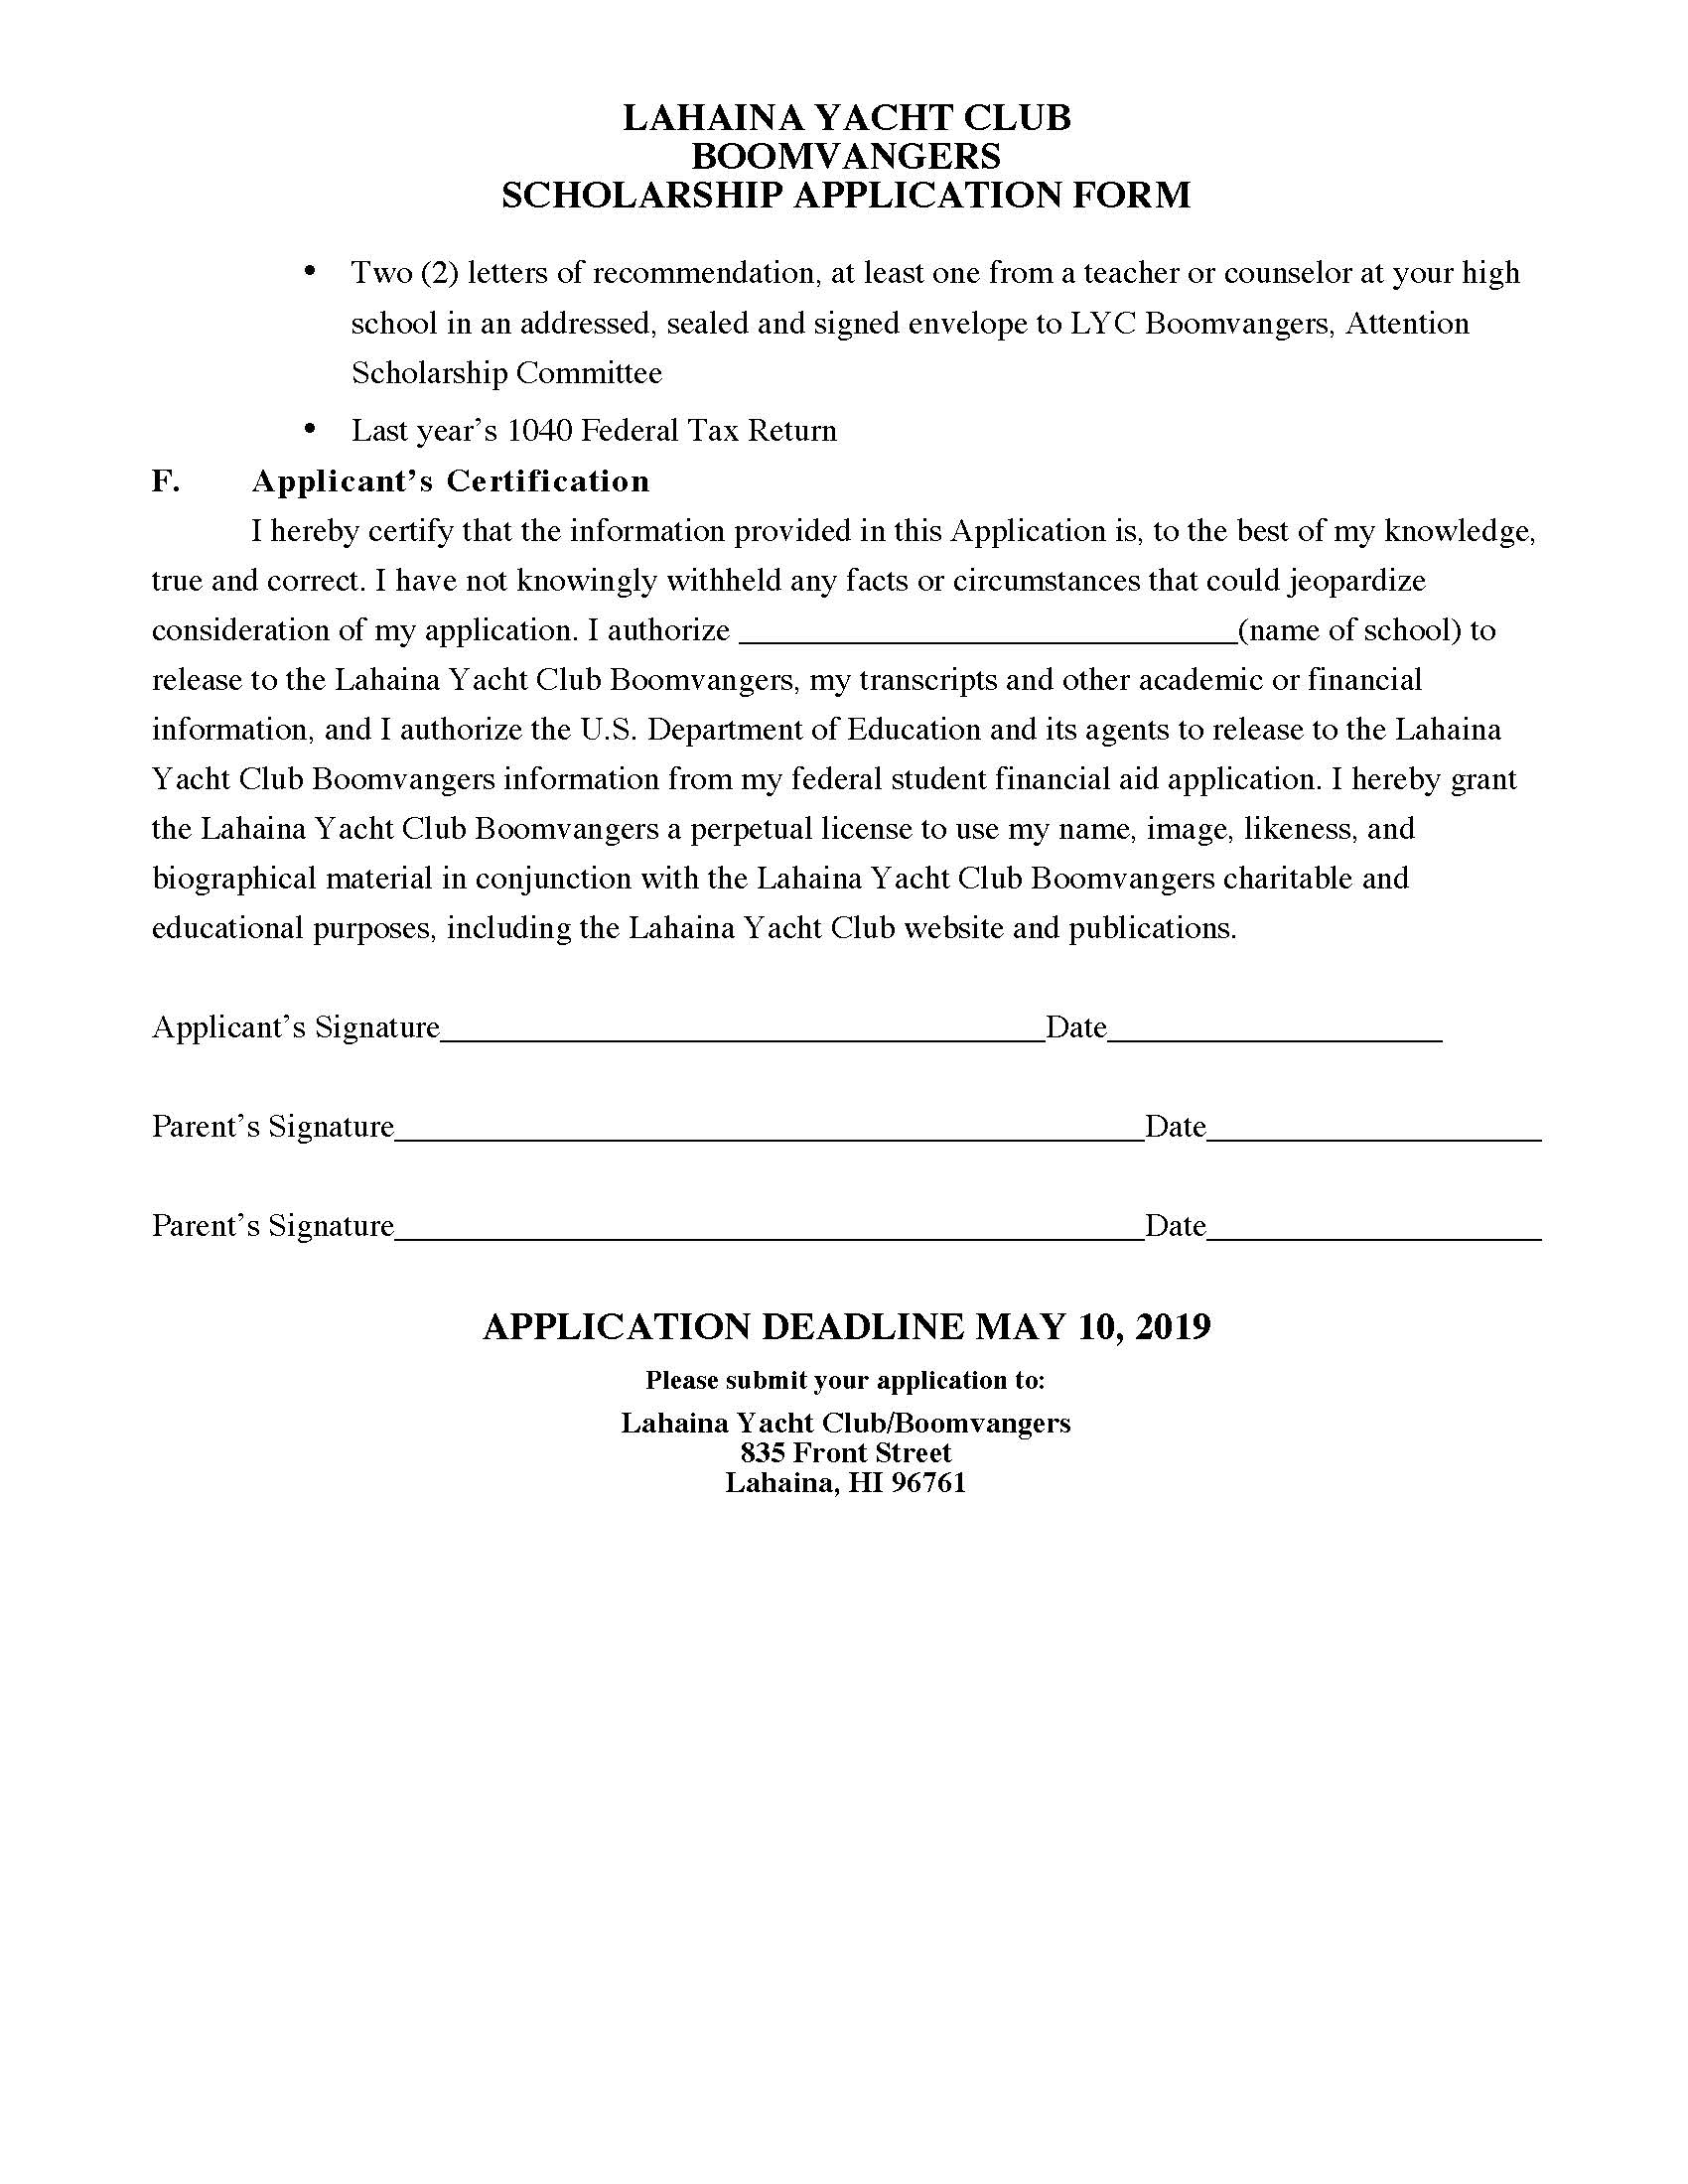 LYC Scholarship Application 2019_Page_2.jpg